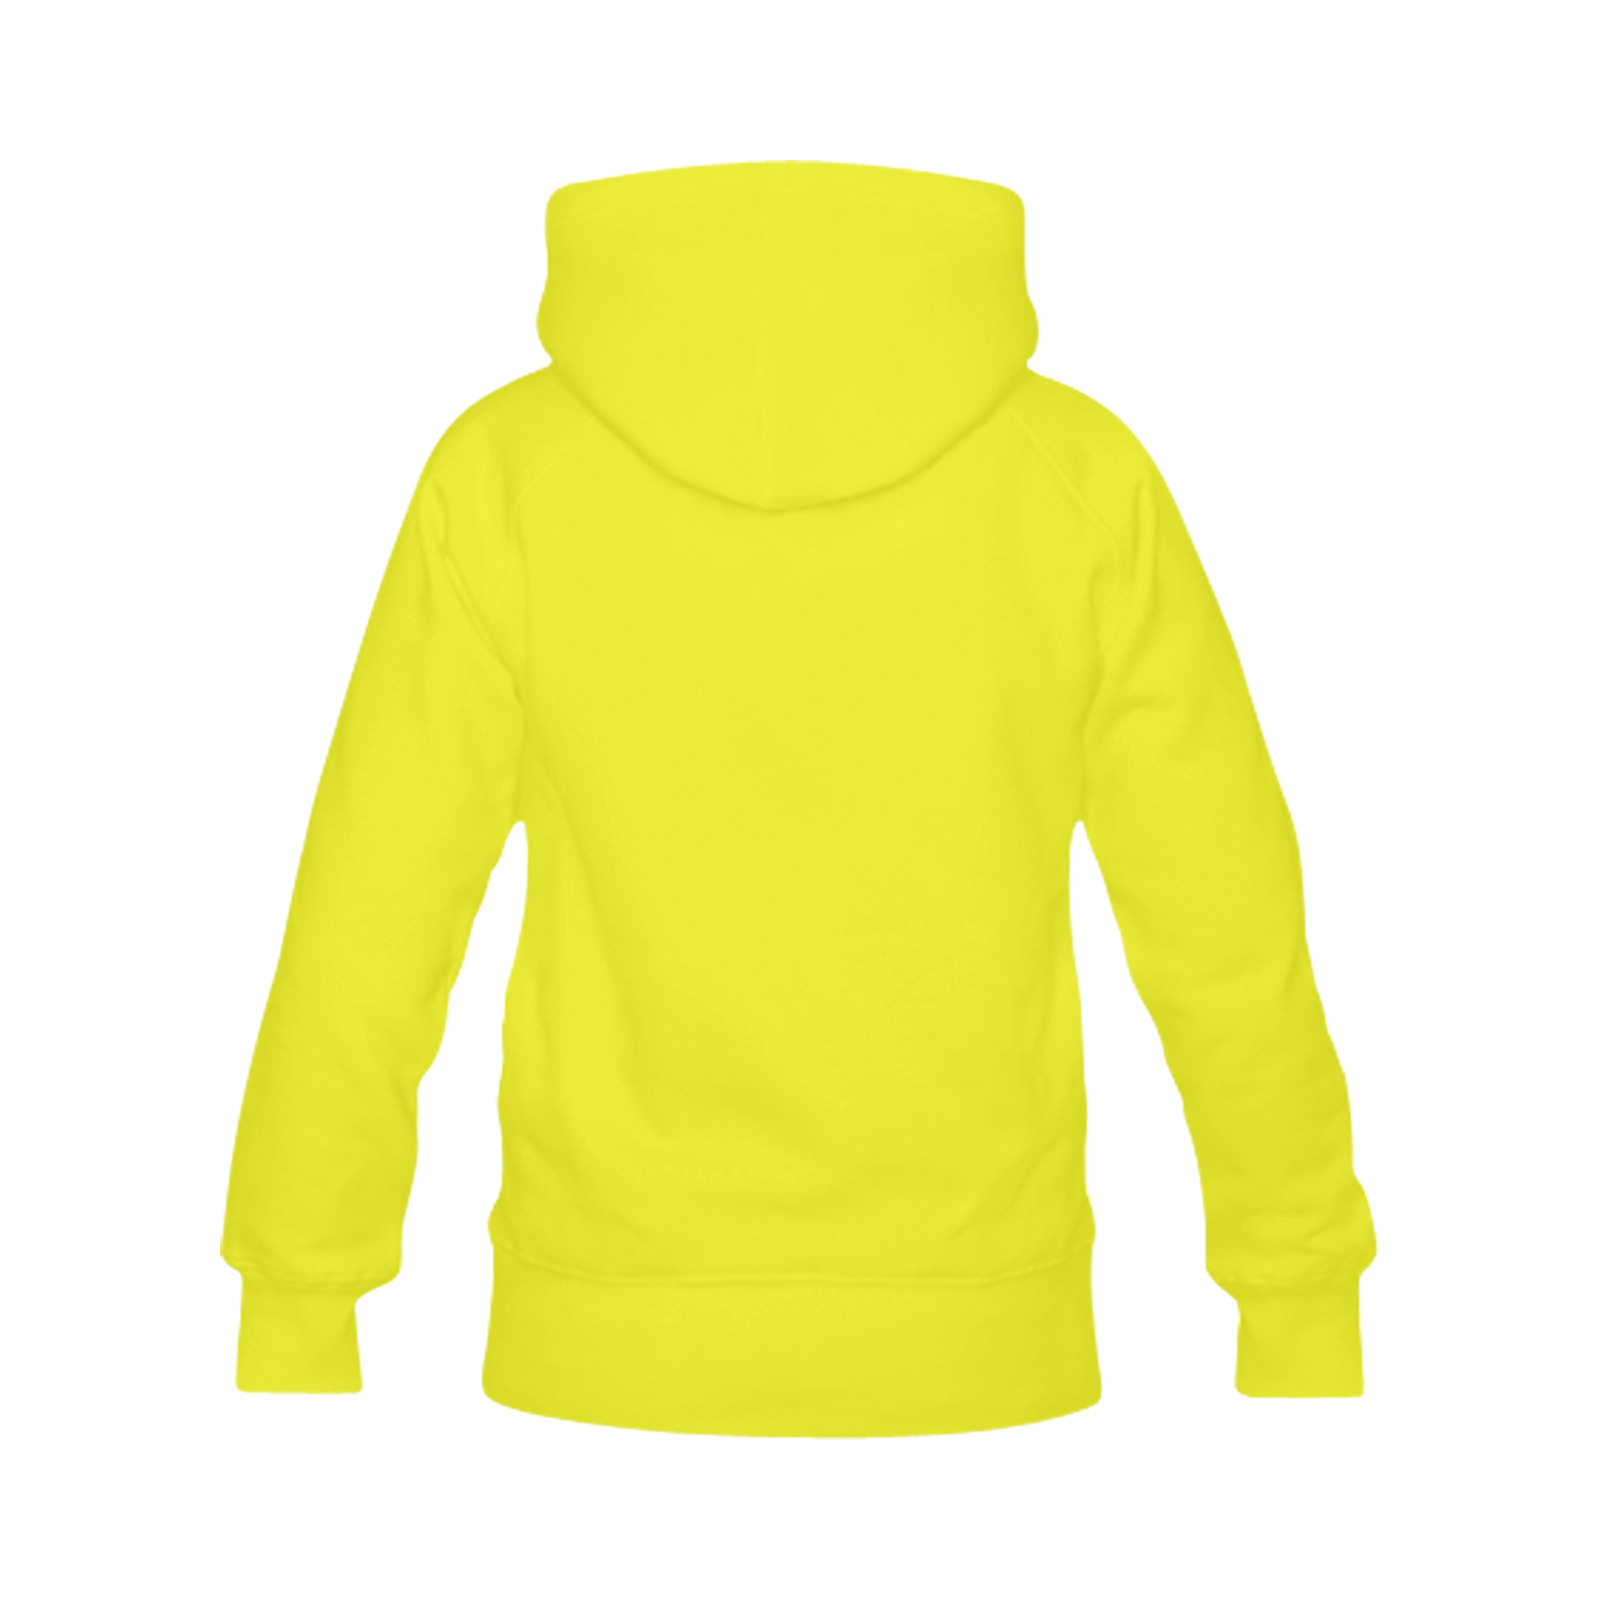 Don't Worry Be Happy Cartoon Face Men's Classic Hoodies (Model H10)